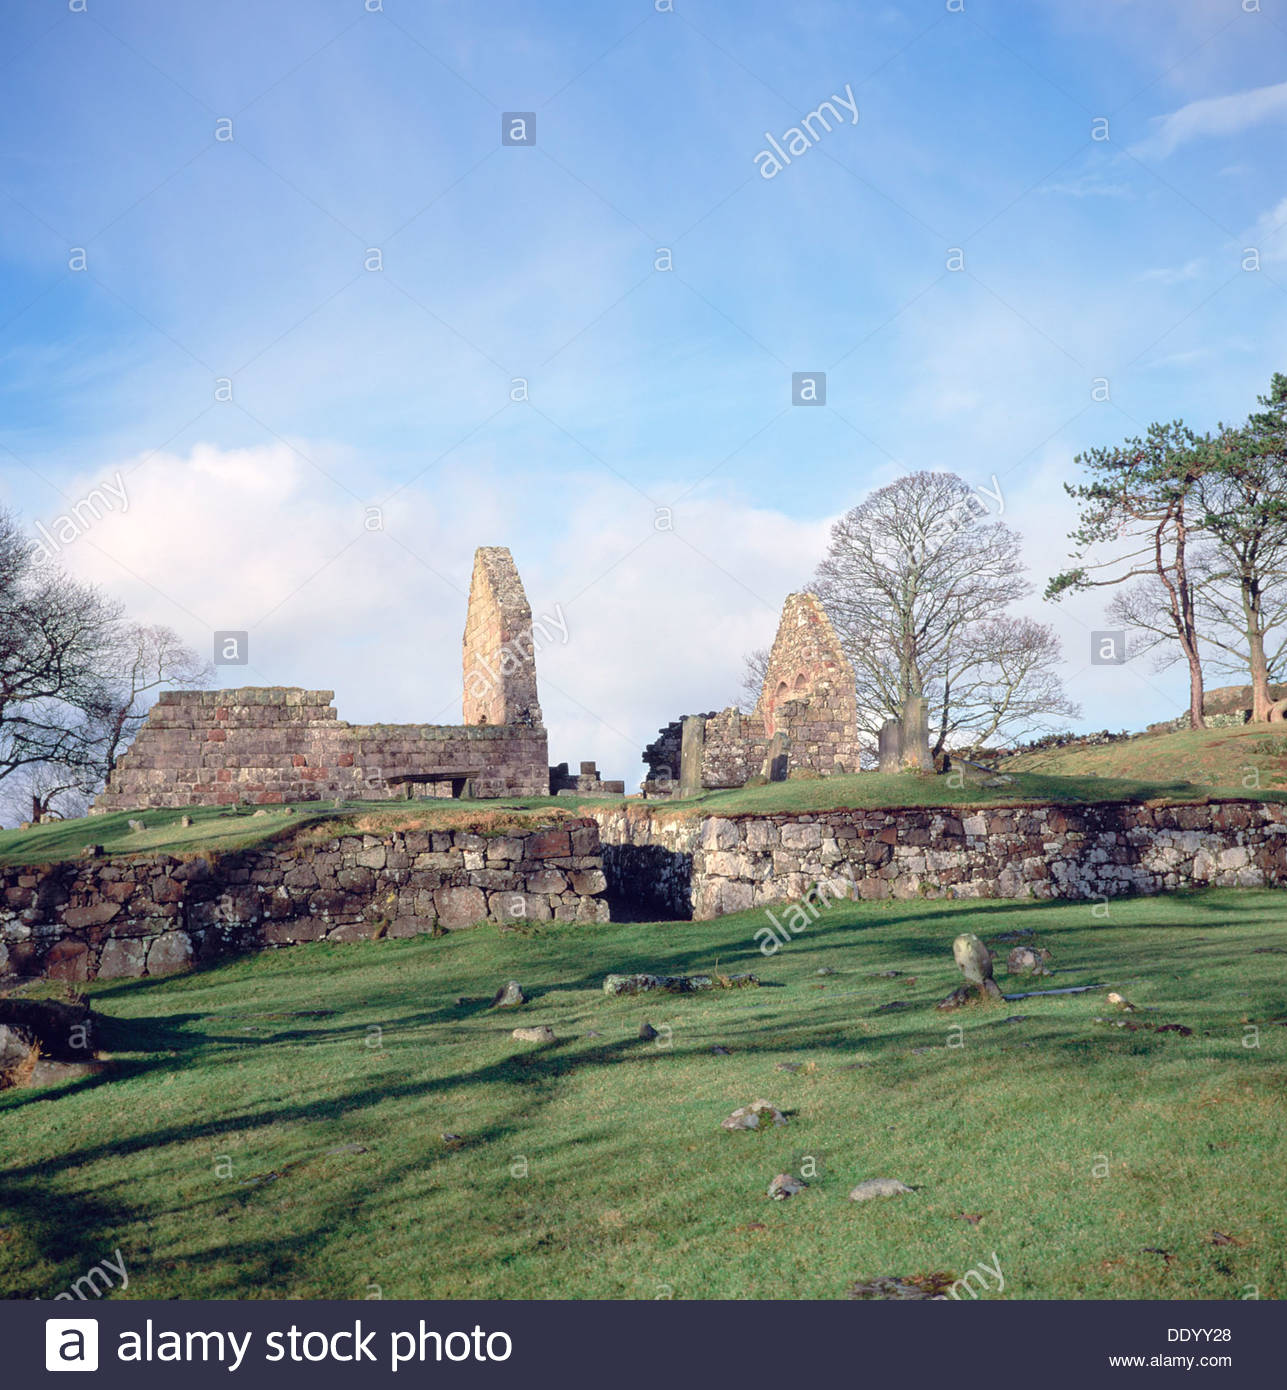 Ruins of St Blane's Chapel, Isle of Bute, Argyll and Bute, Scotland. Artist: David Toase - Stock Image